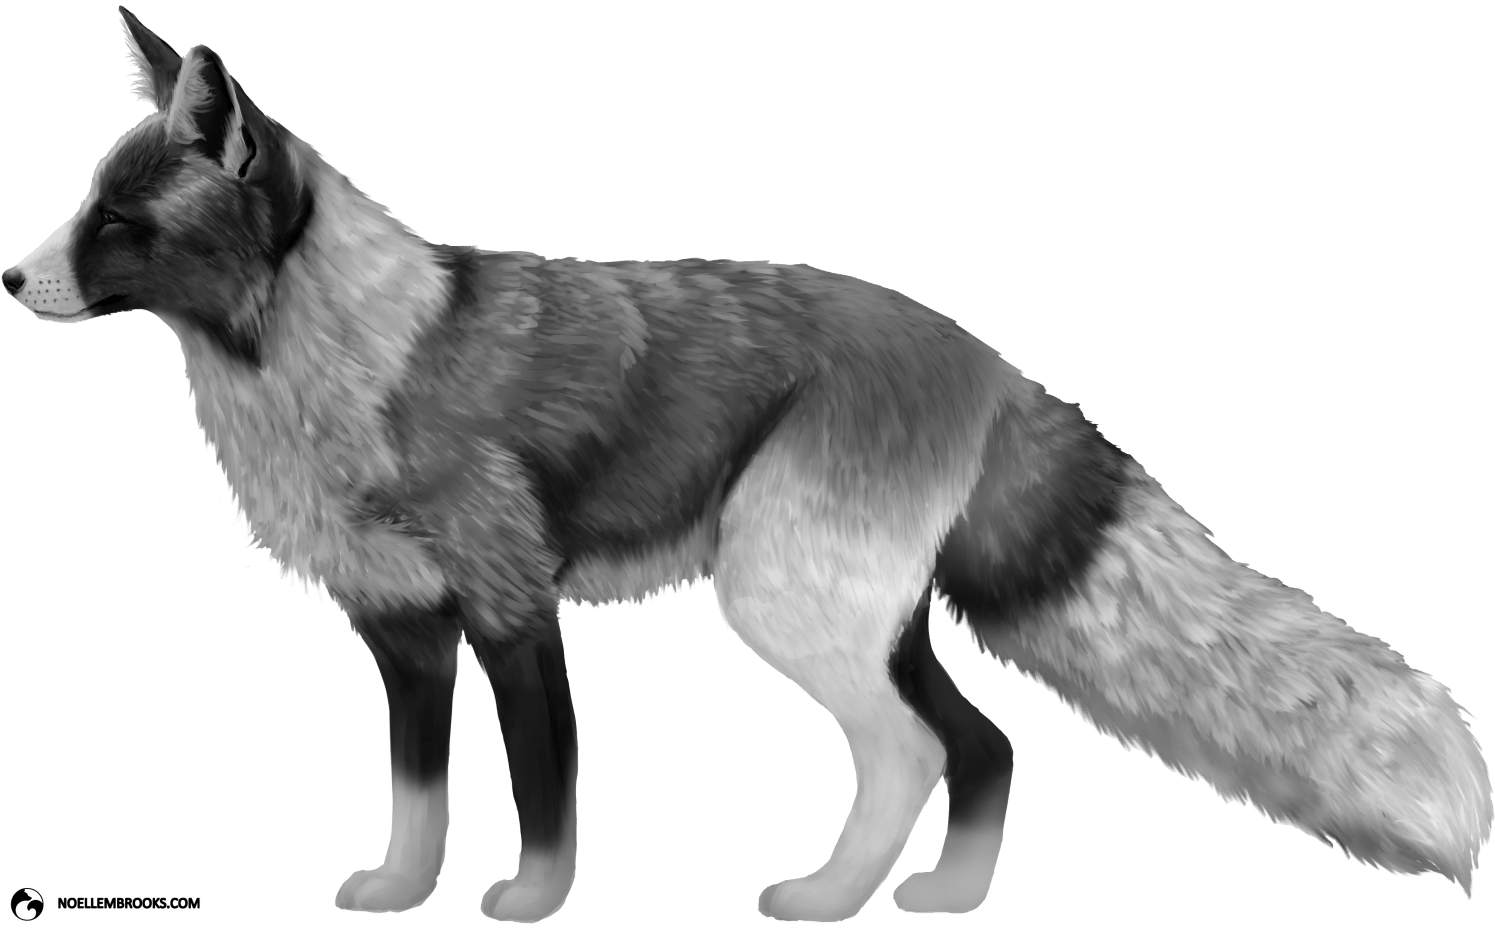 Piebald-Spotted Silver-Colored Red Fox